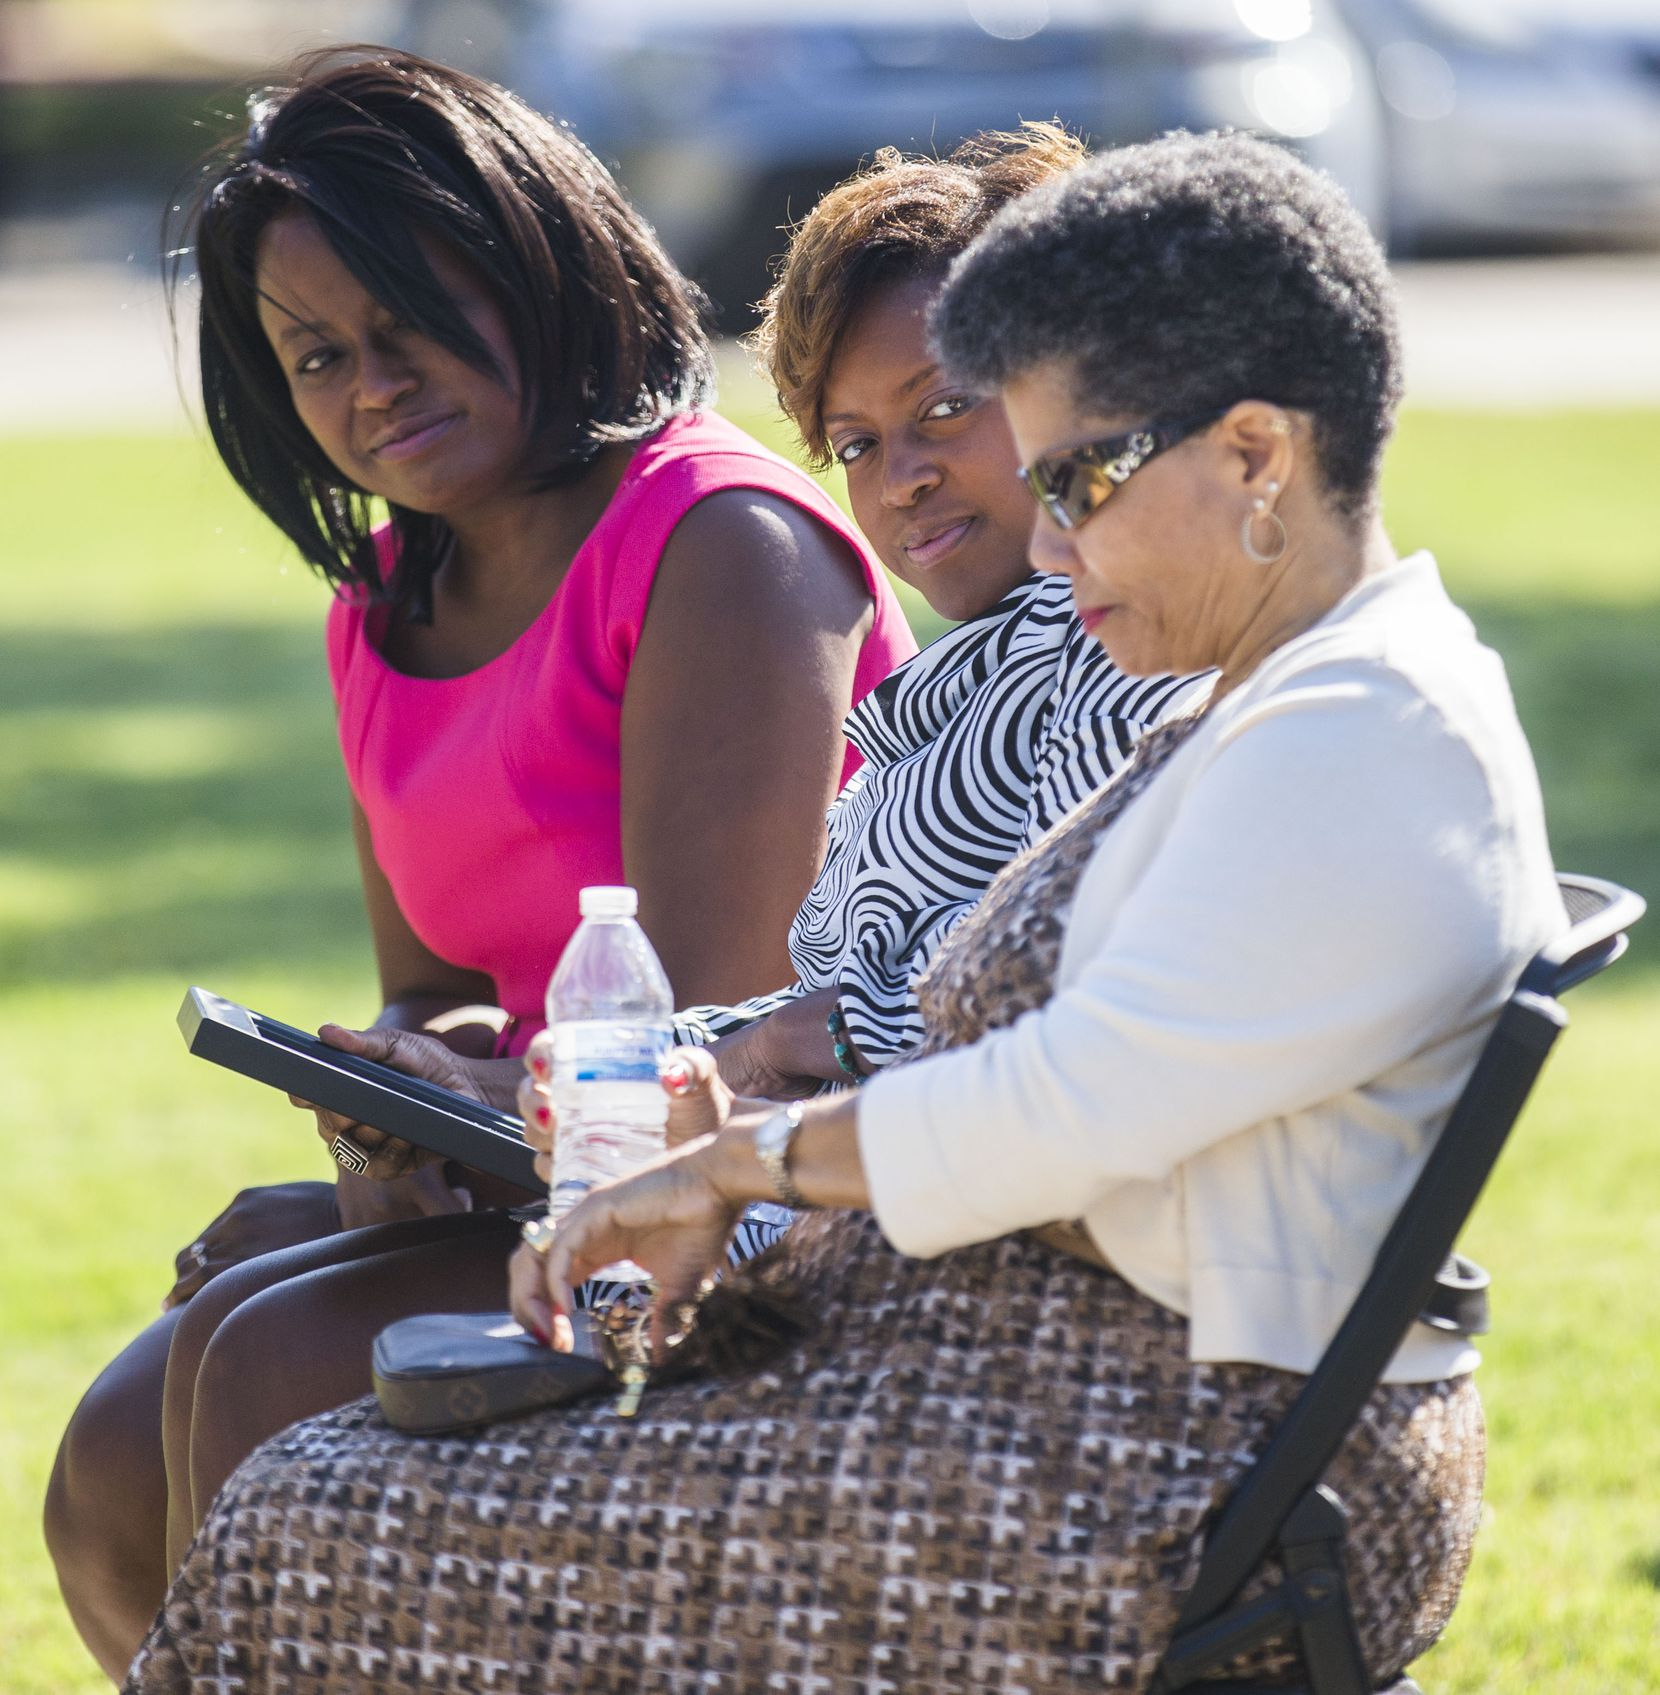 Dr. Carla Spann Lopez, left, and Gai Spann look at their mother, Gwenelle Johnson Spann, right, during funeral services for her husband, retired Army Air Corps 1st Lieutenant Calvin Spann on Saturday, September 12, 2015 at Covenant Church in Carrollton, Texas.  Spann was an original Tuskegee Airman and fighter pilot with the 100th Fighter Squadron of the 332nd Fighter Group.  He served during World War II, when he flew 26 combat missions.   (Ashley Landis/The Dallas Morning News)